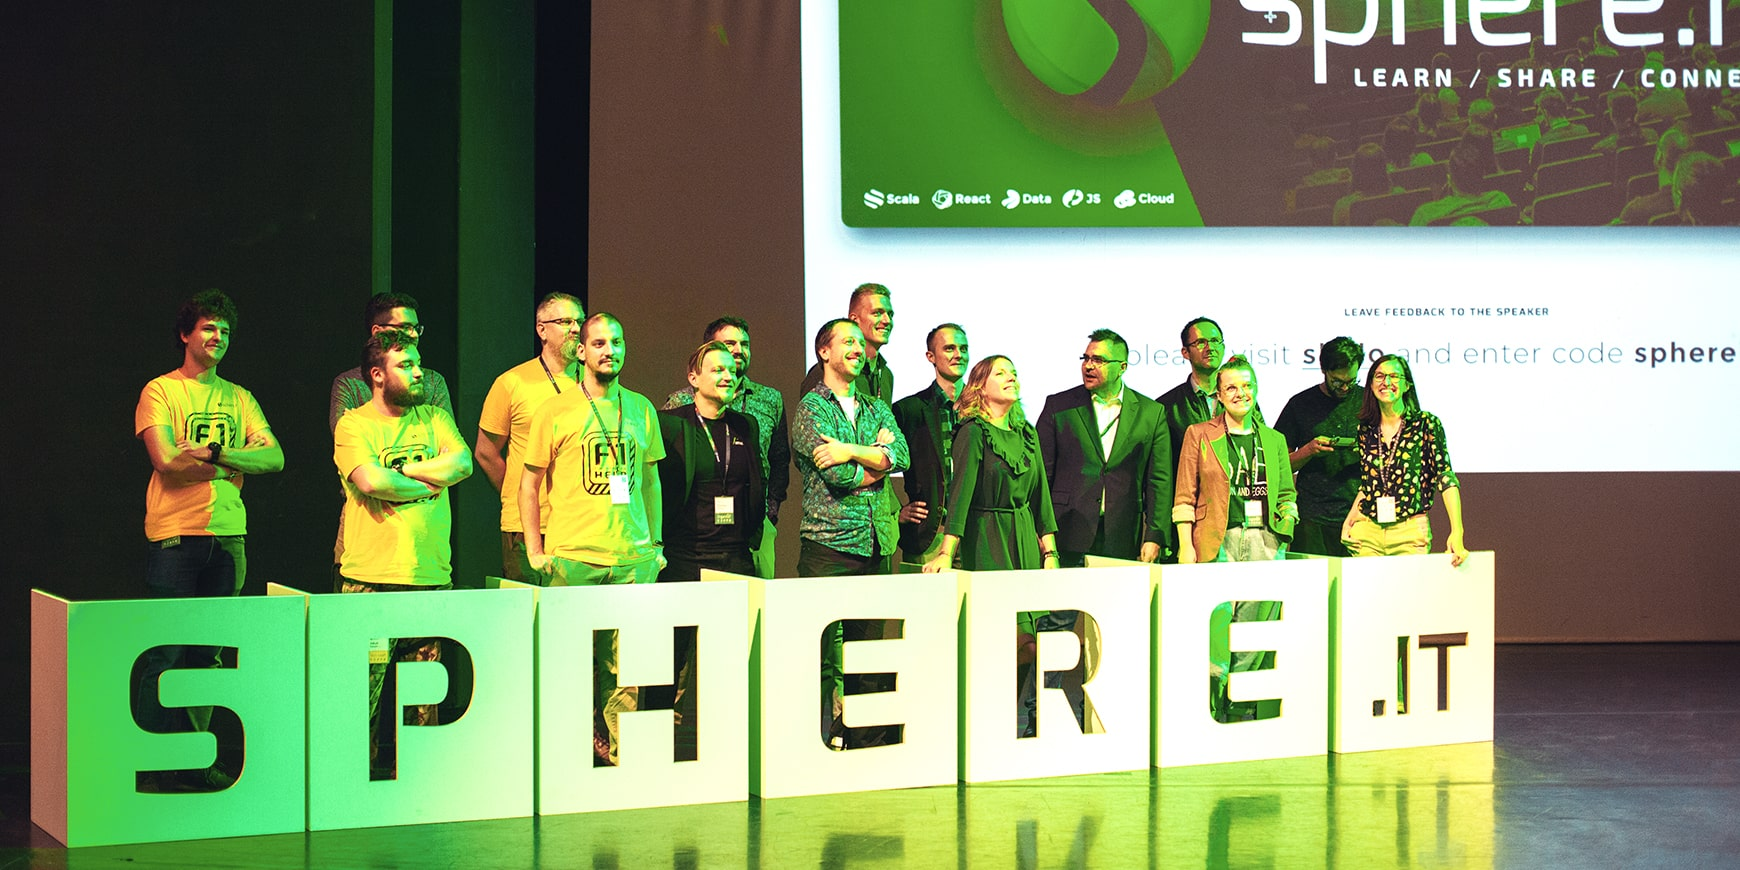 Sphere.it conference, Scala